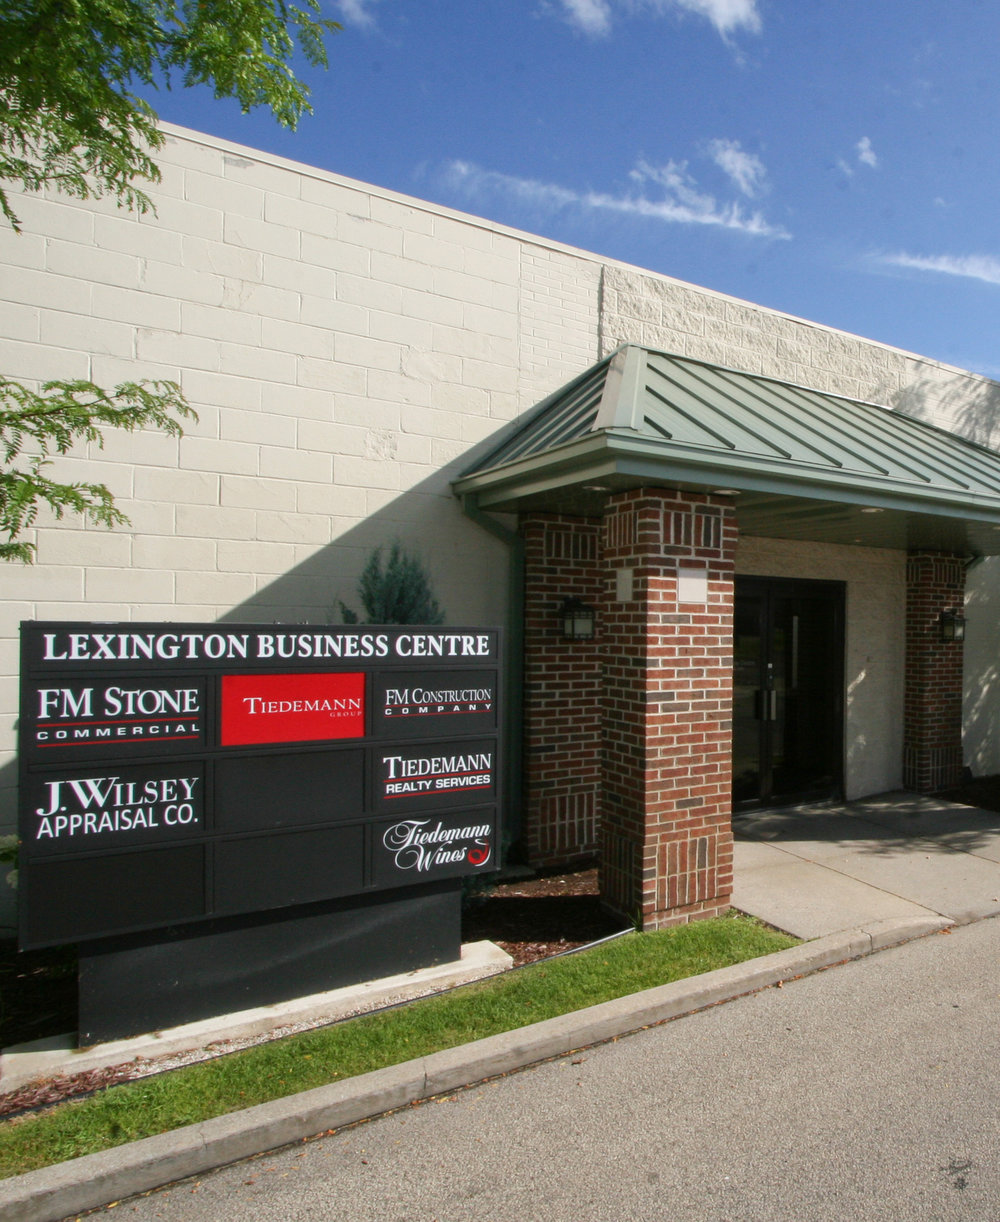 The Lexington Business Centre is a mixture of office, industrial and retail spaces.